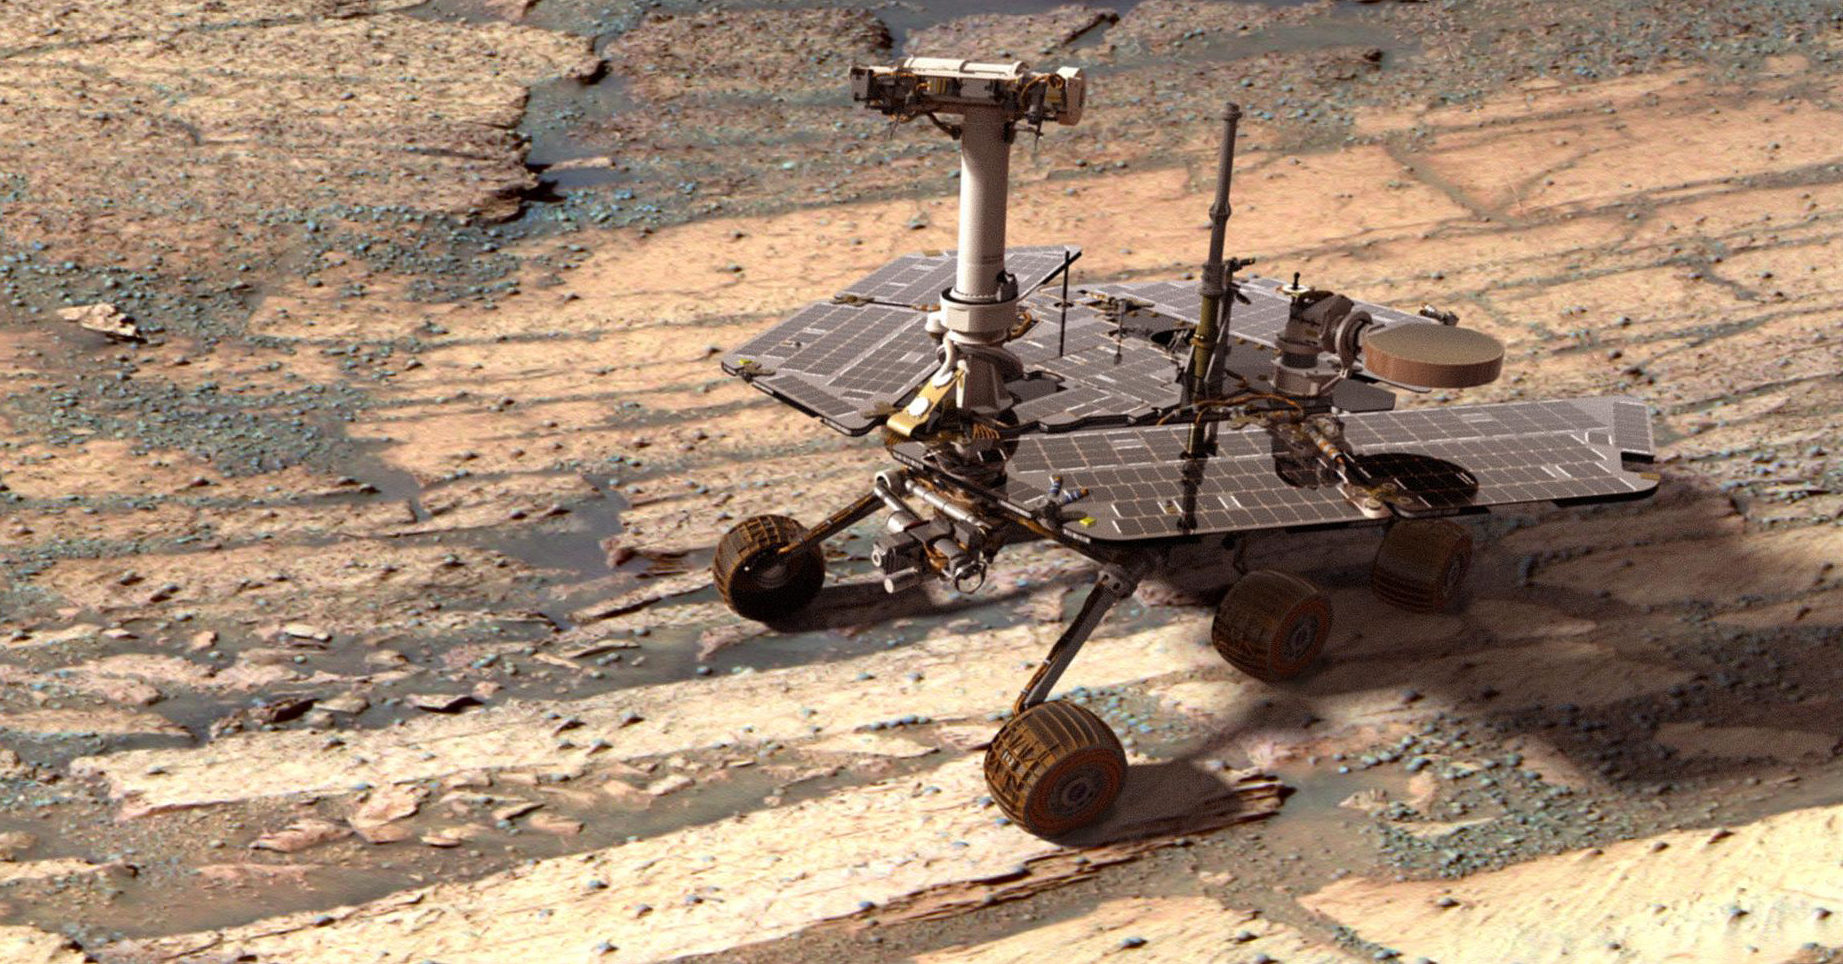 mars-opportunity-rover